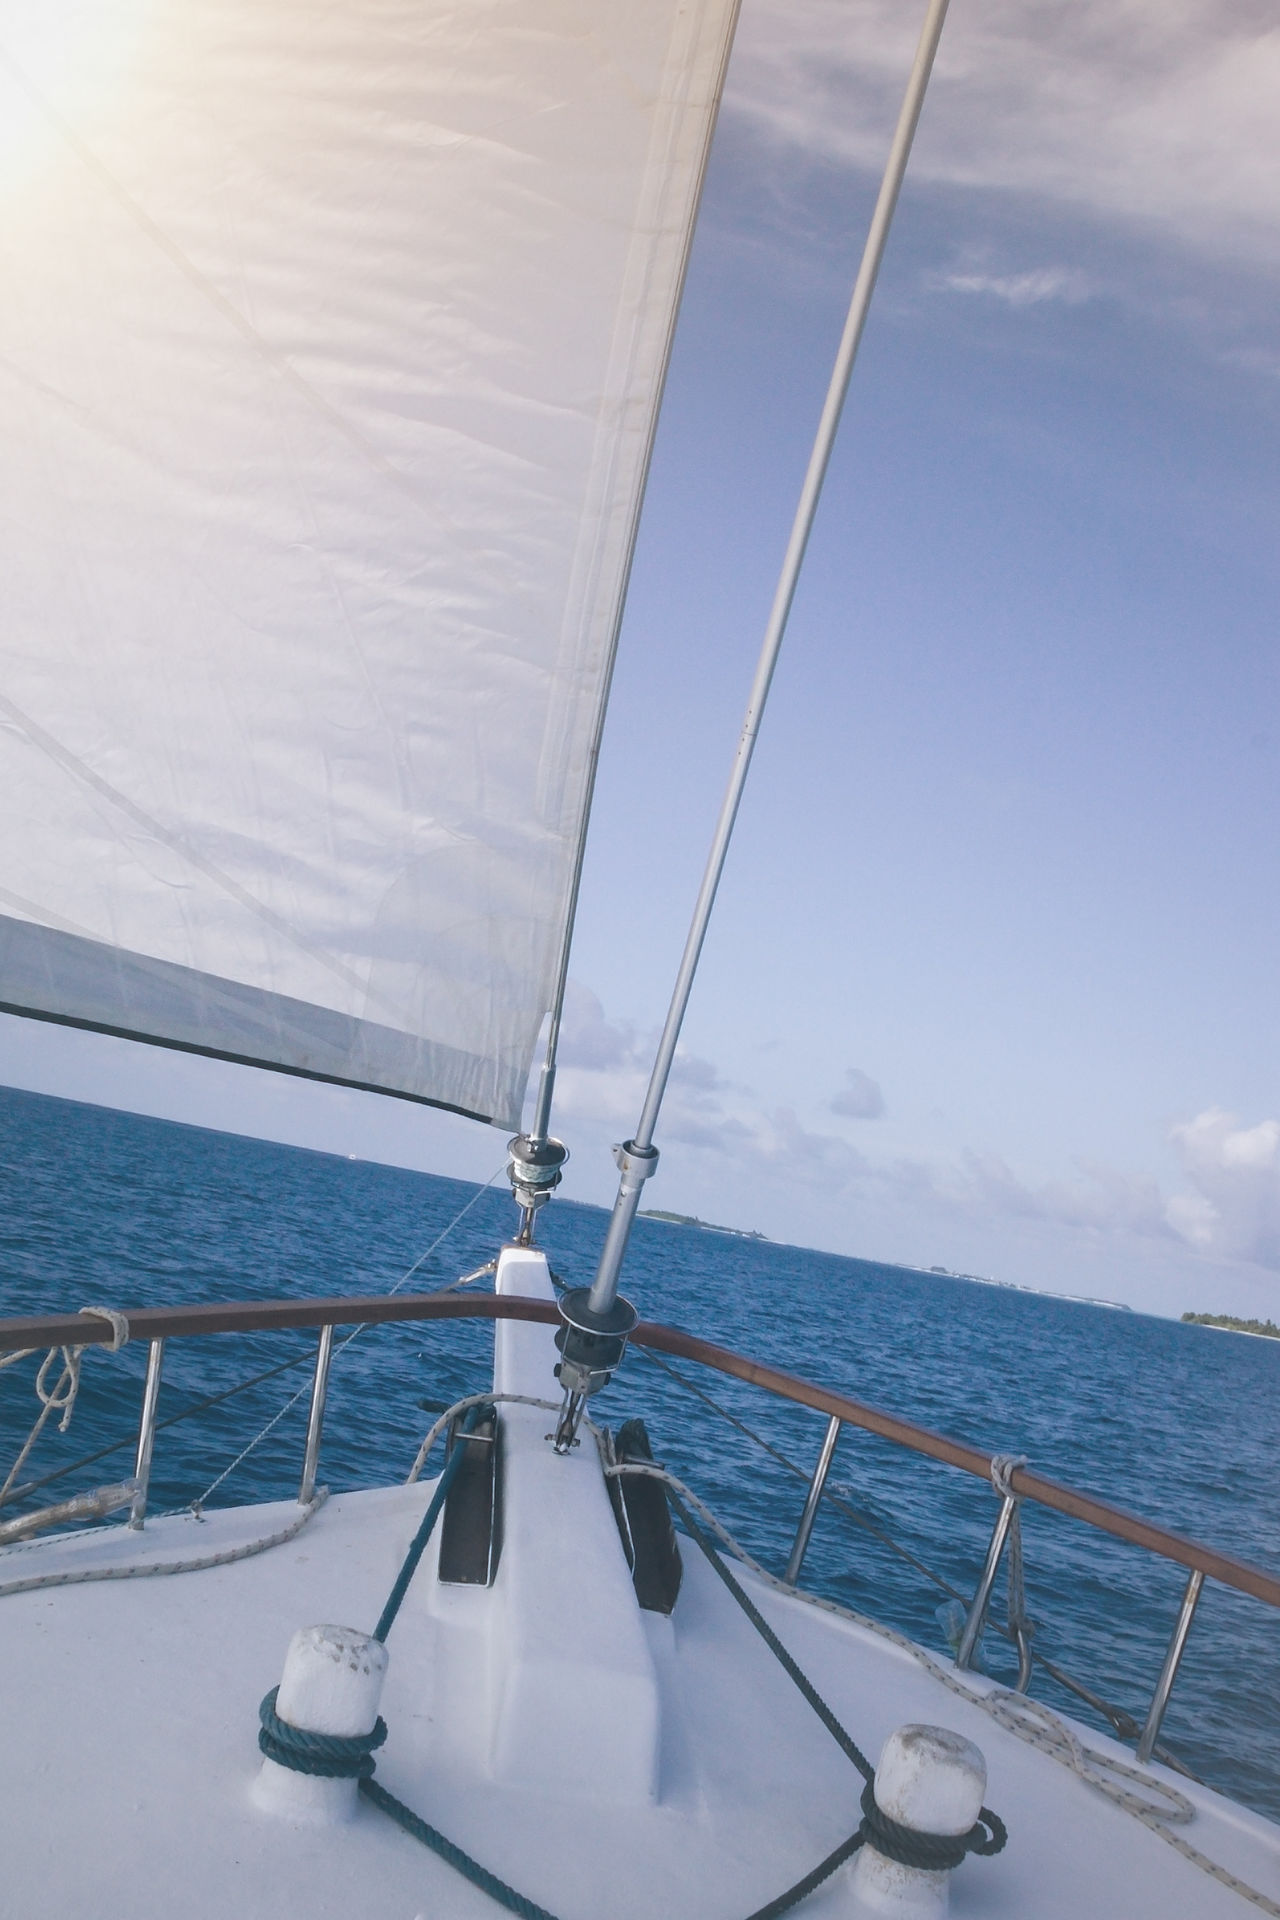 Beauty In Nature Close-up Day Horizon Over Water Mode Of Transport Nature Nautical Vessel No People Ocean Outdoors Sailboat Sailing Sailing Ship Sea Sky Transportation Water Yacht Yachting